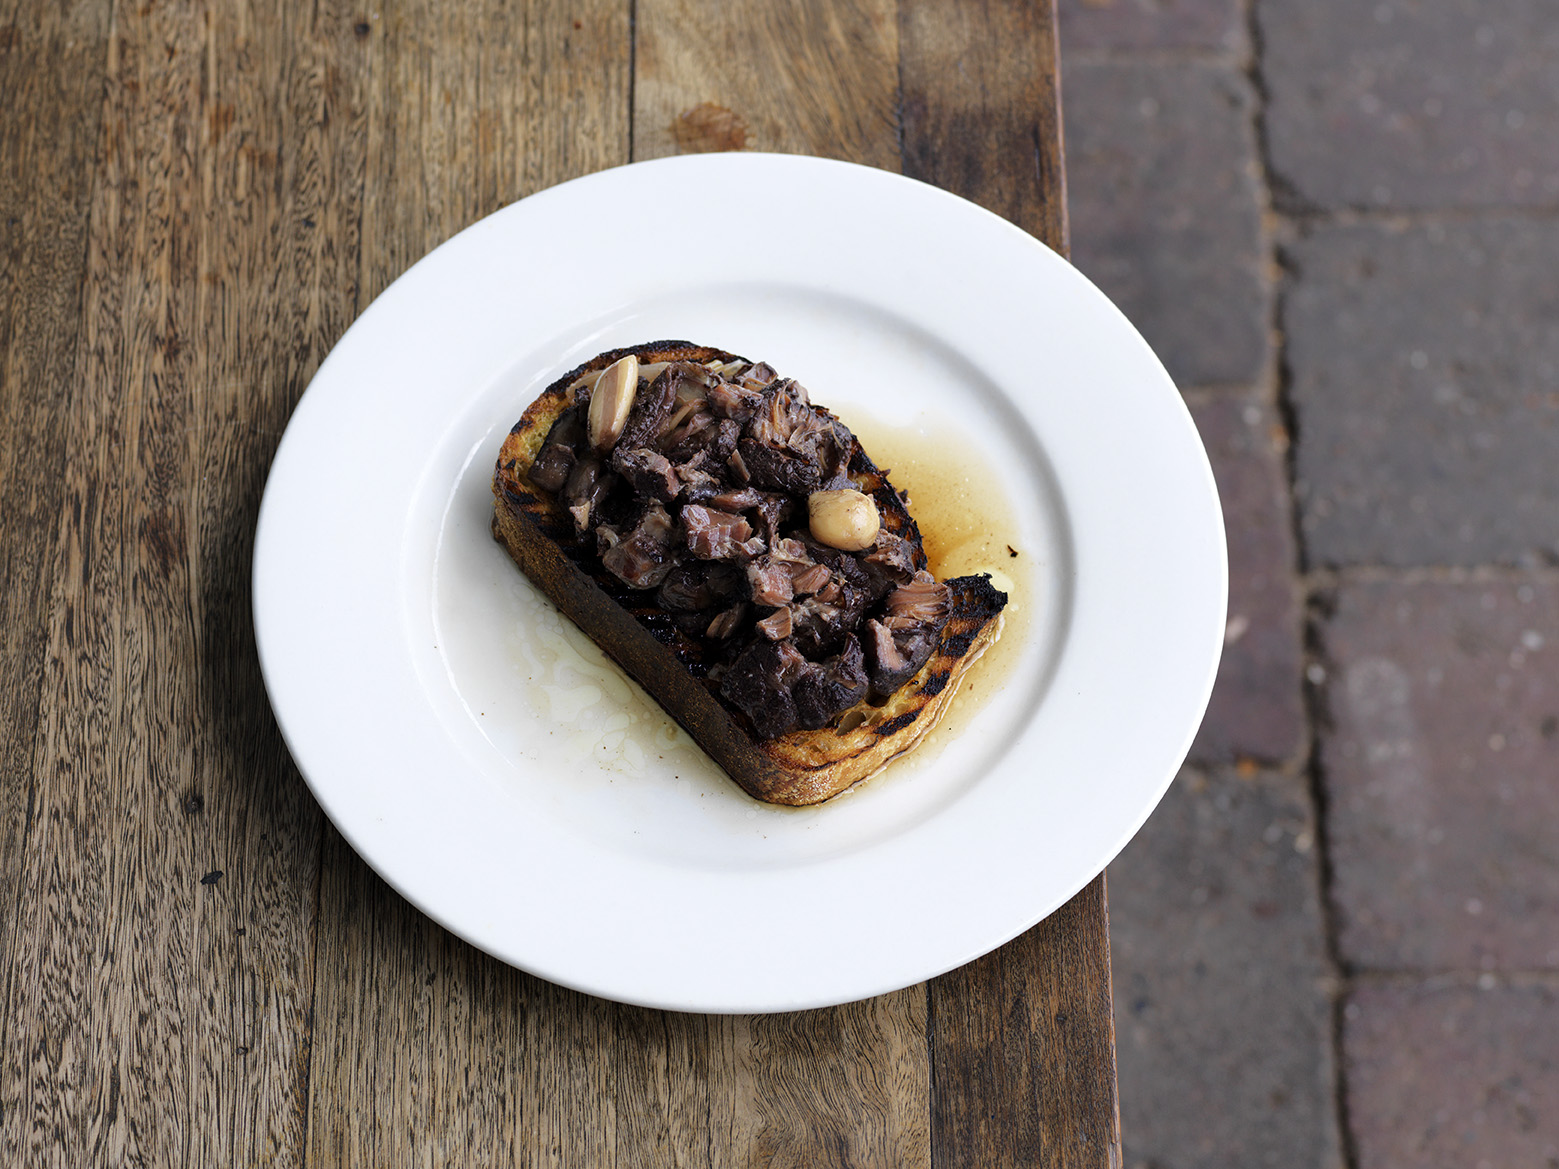 Menu development involves thinking about other parts that can and should be used and letting quality produce do the talking - like this beef shin braised in red wine and garlic and served on grilled sourdough at Ethel.